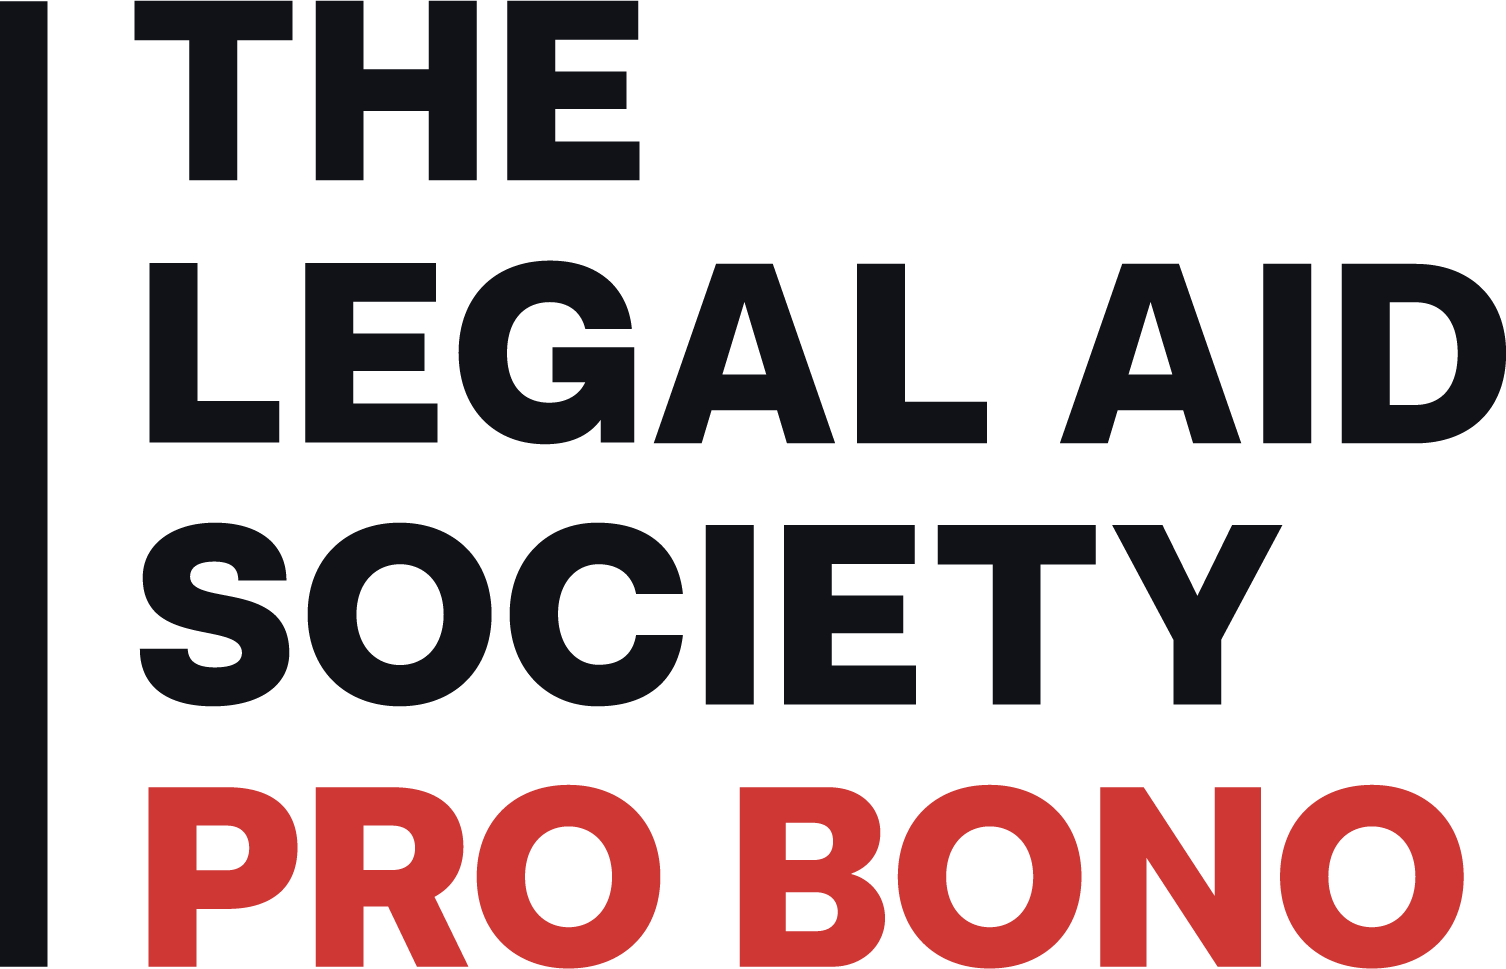 Pro Bono — The Legal Aid Society